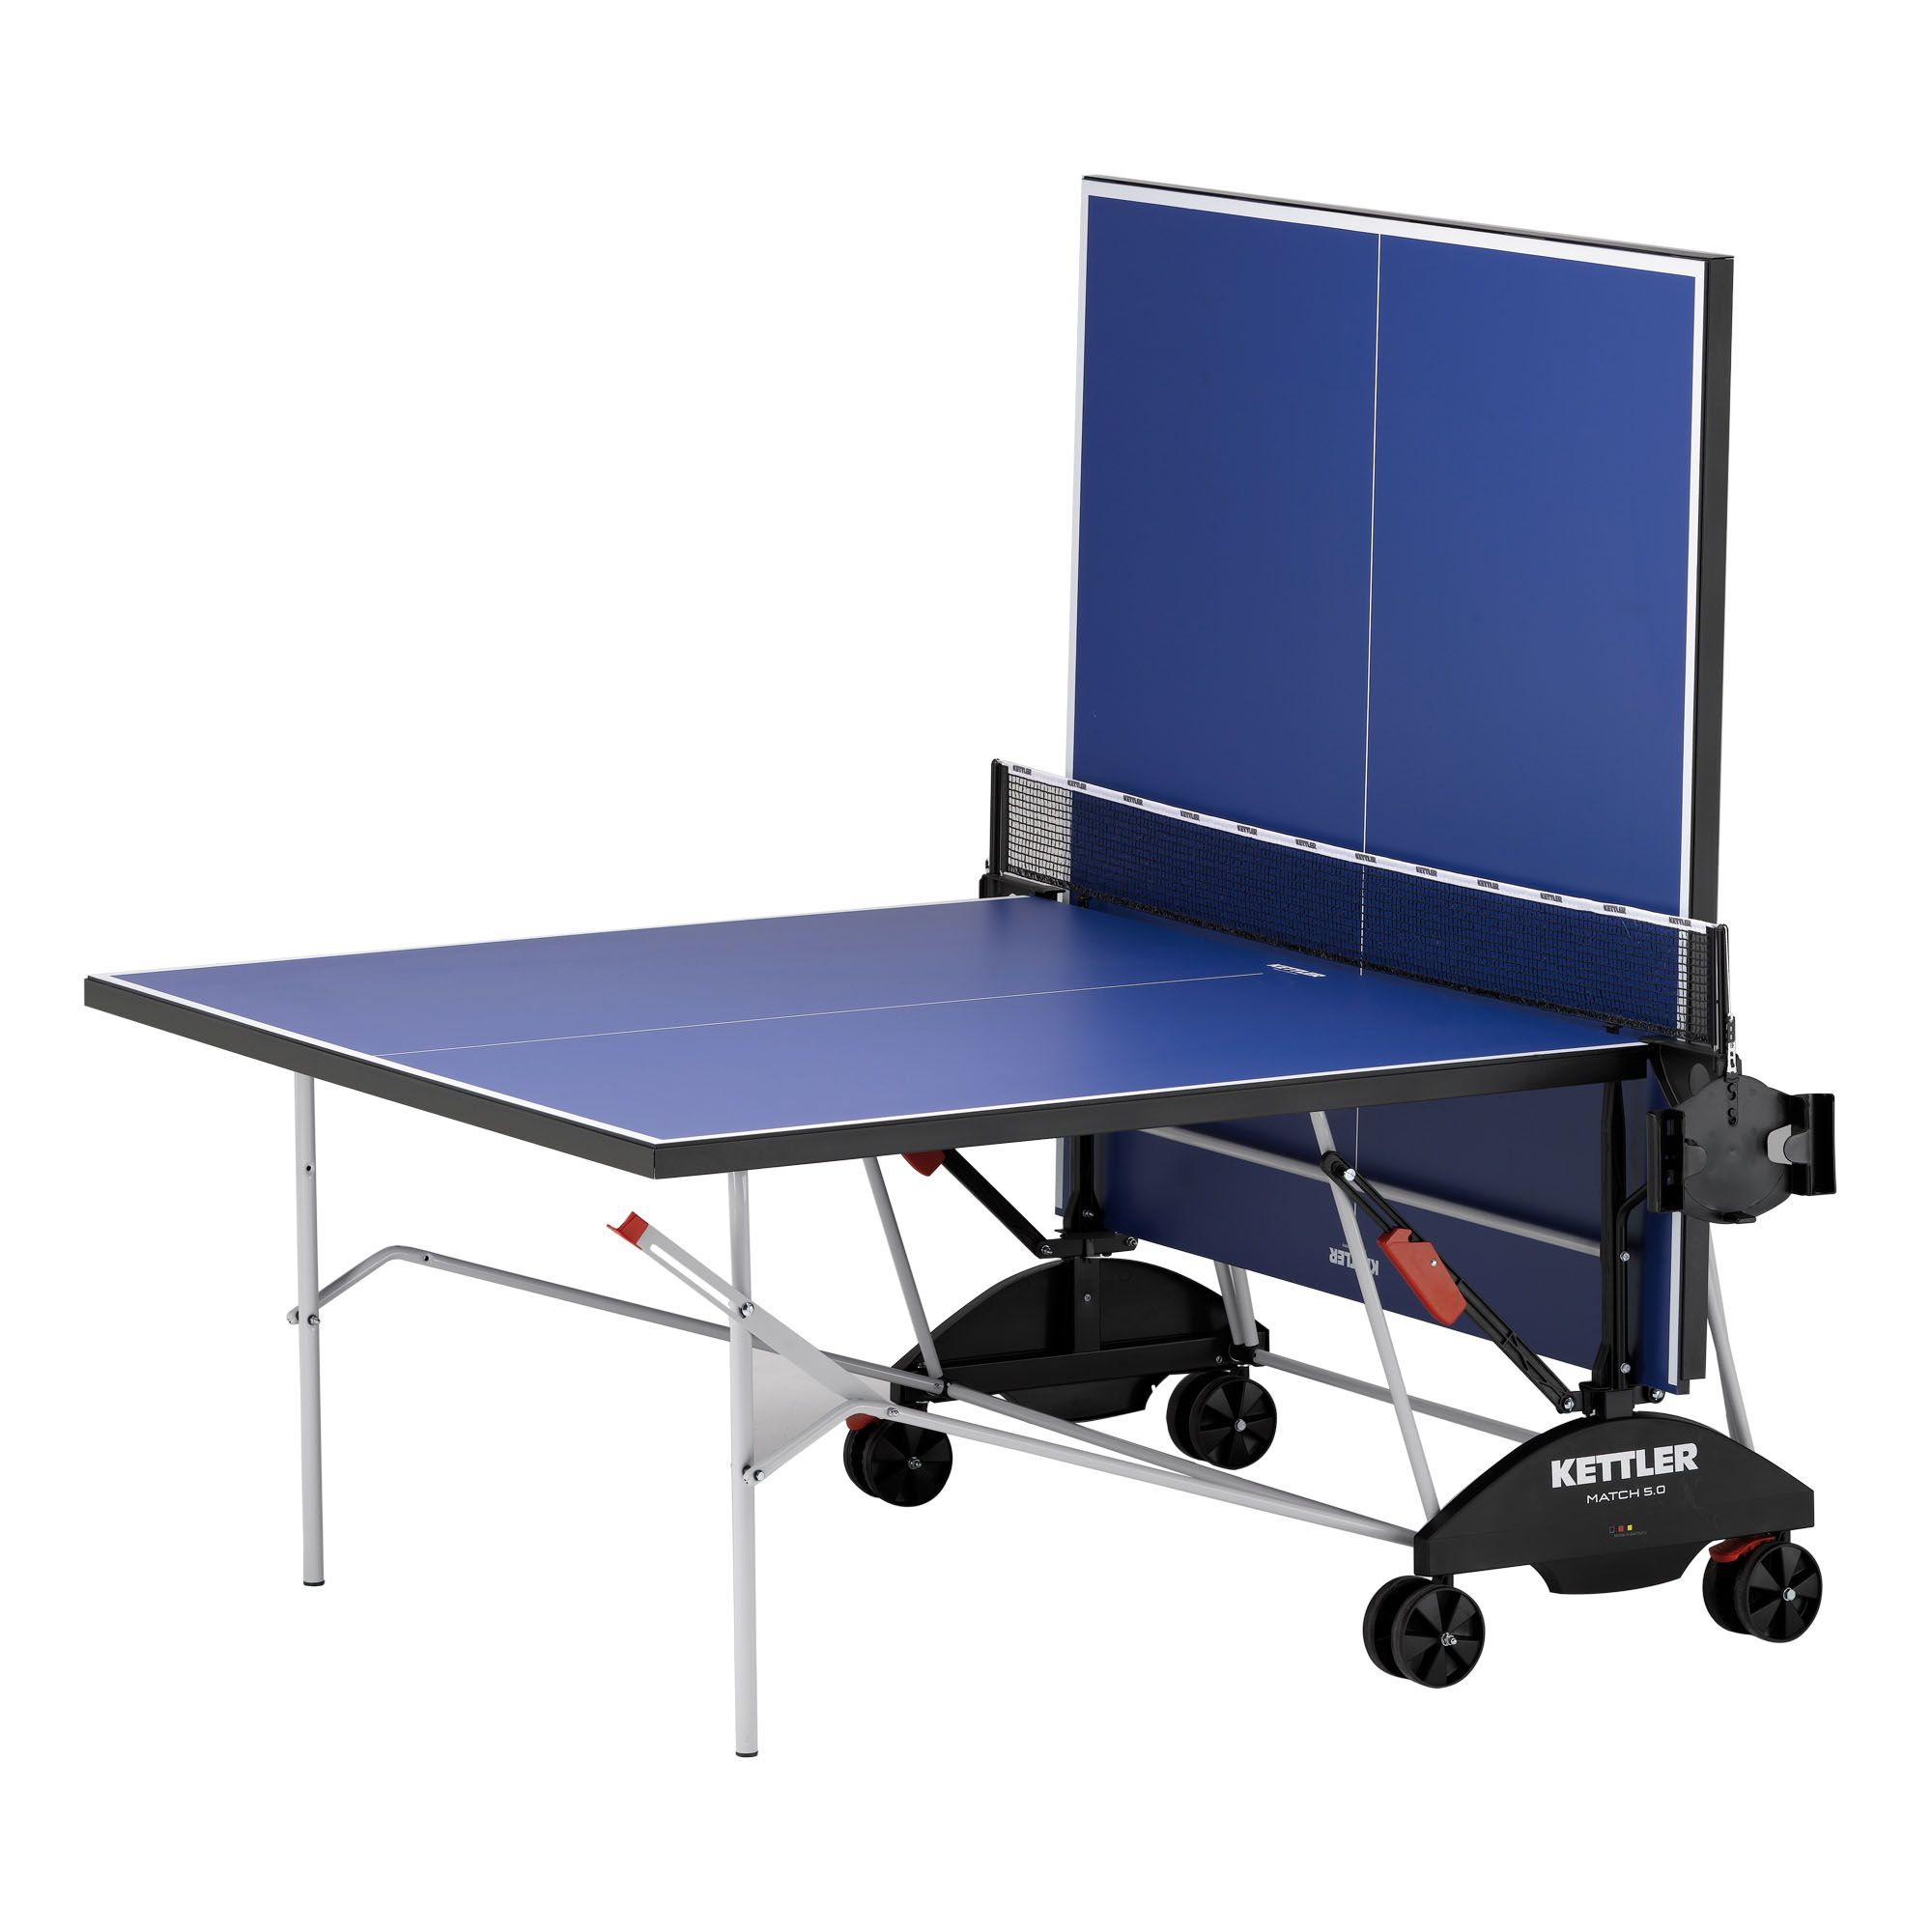 kettler match 5 0 outdoor table tennis table. Black Bedroom Furniture Sets. Home Design Ideas